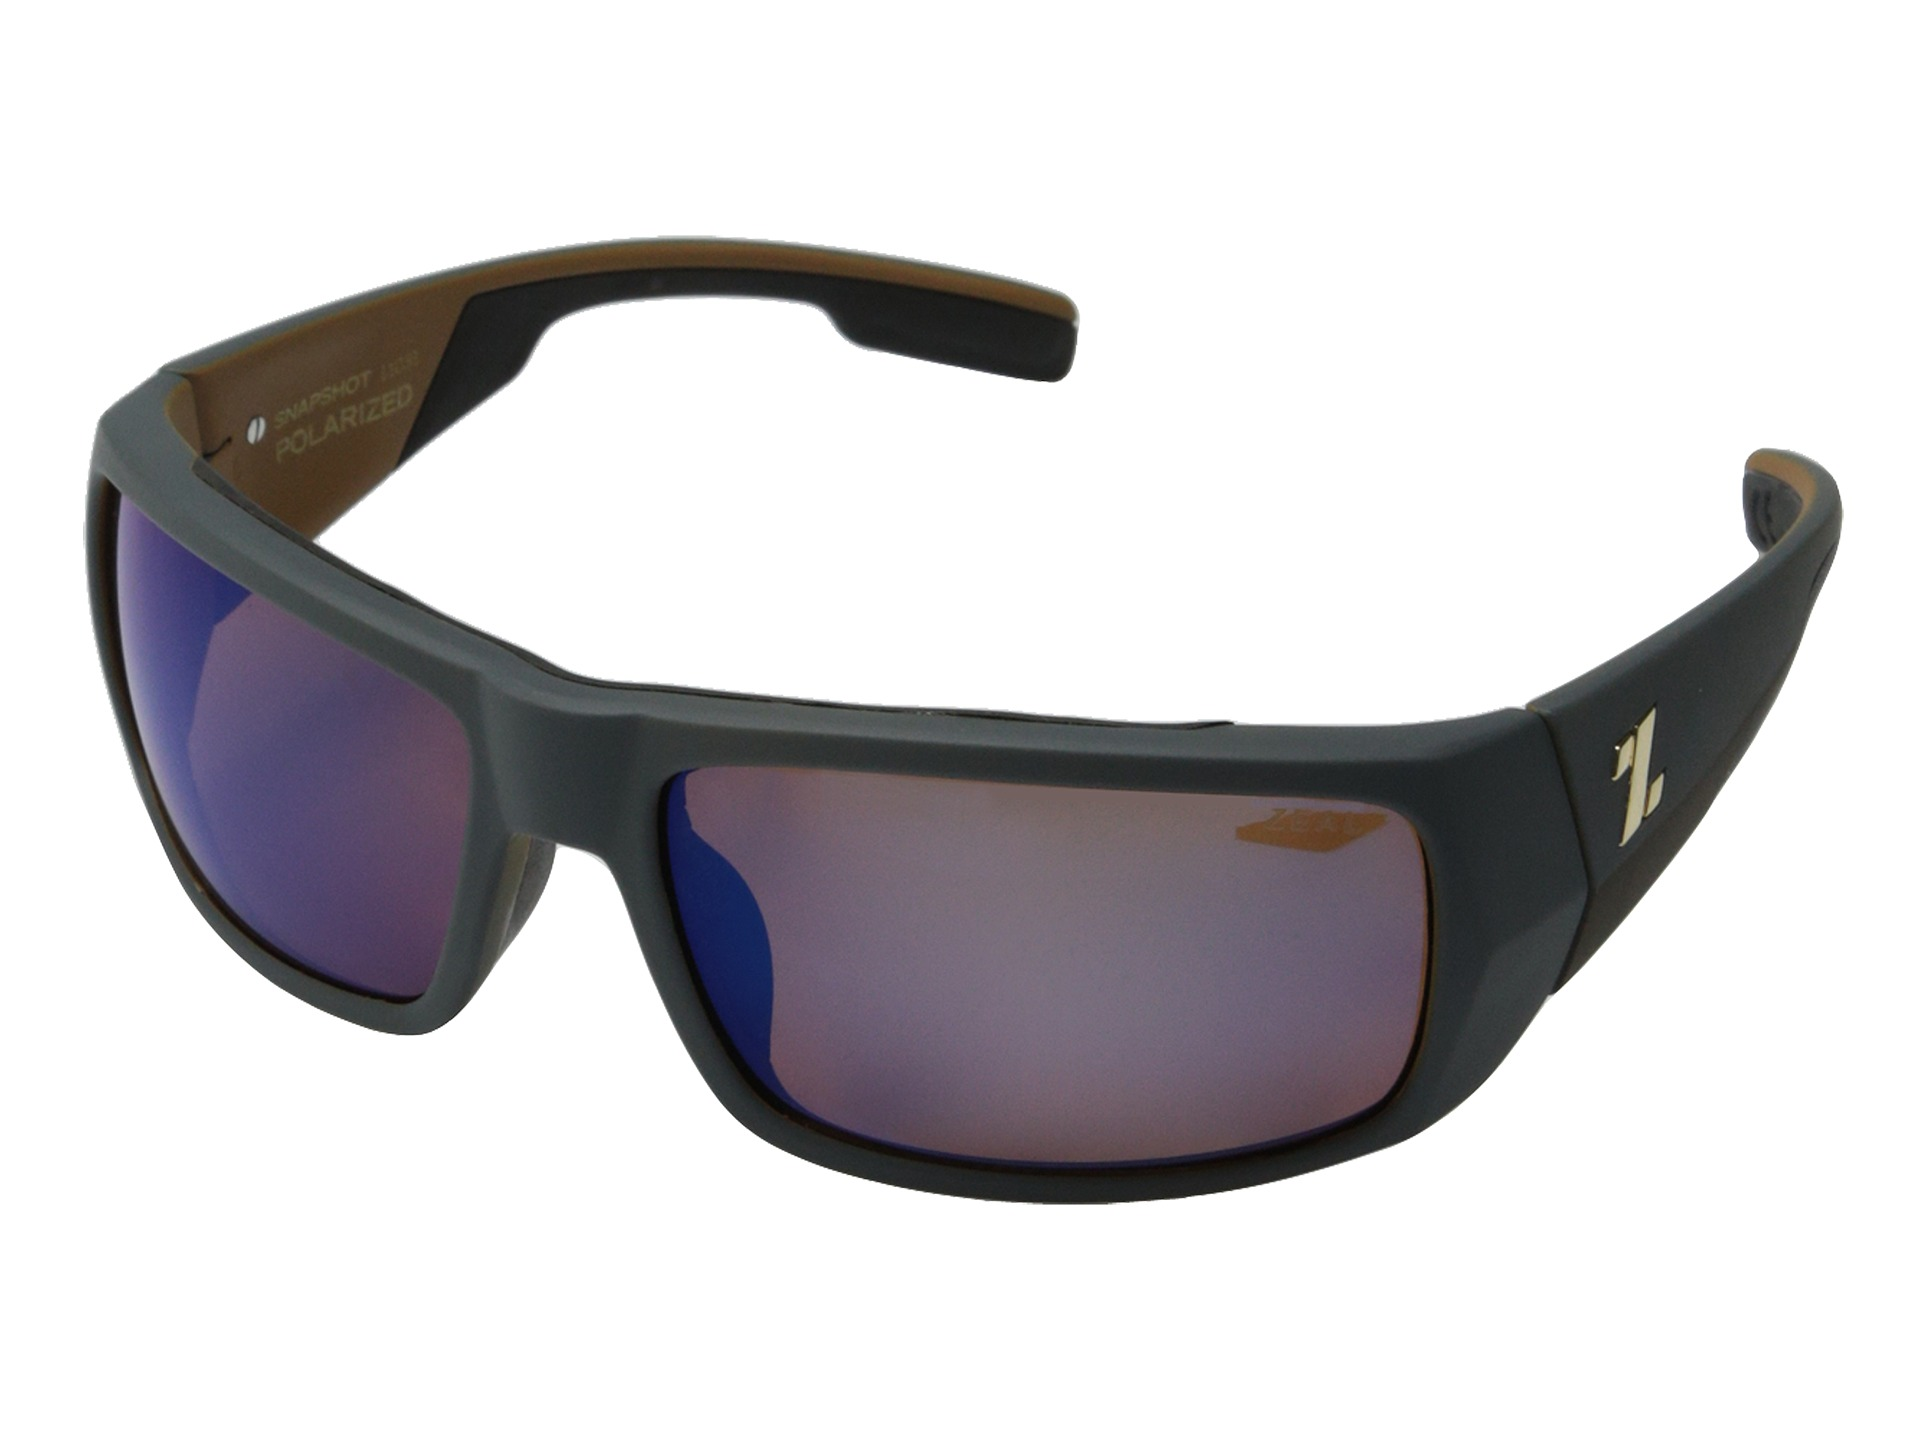 f10c0641fd62 Polarized Glasses Meaning